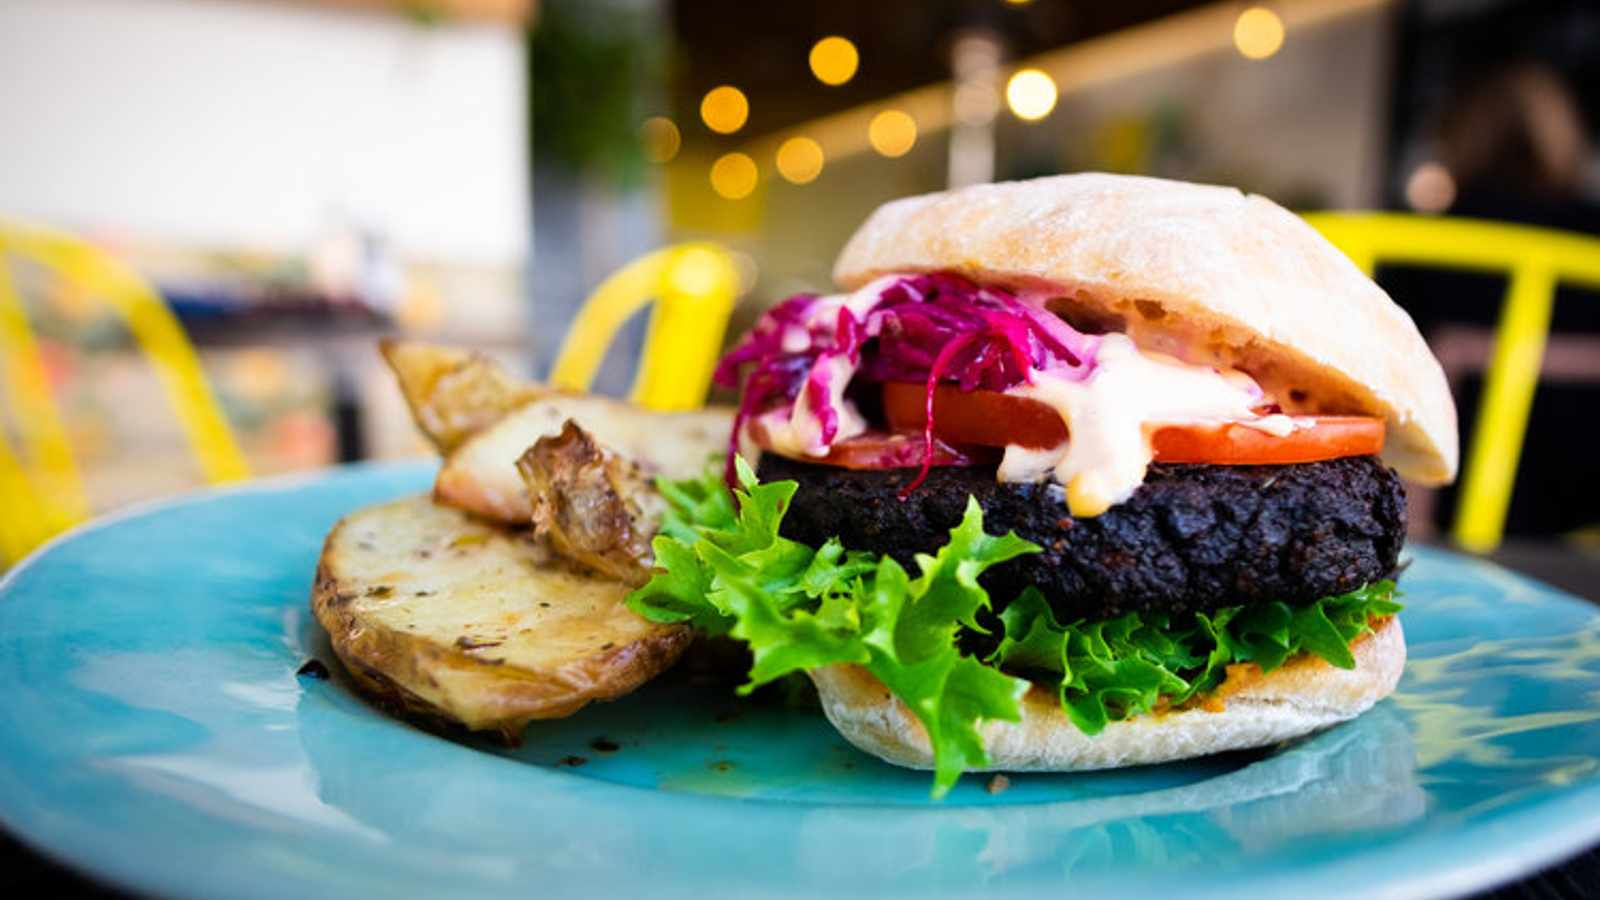 How To Eat #Plantbased When Dining Out